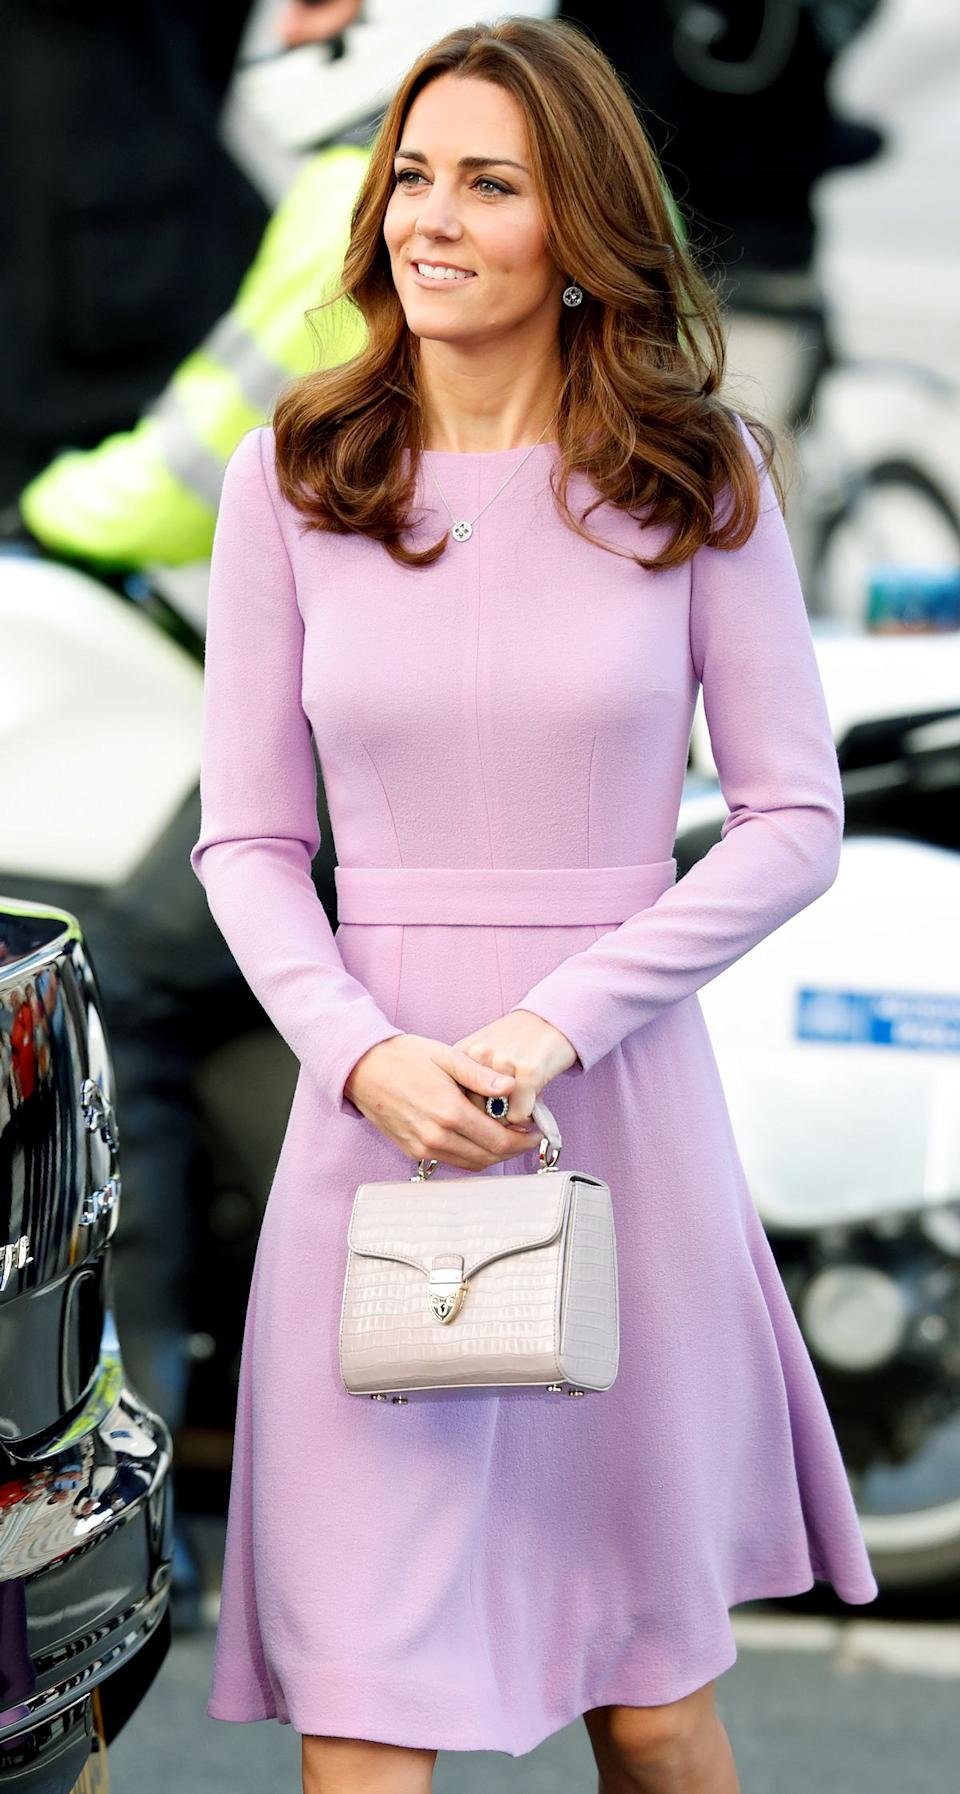 Kate Middleton has been wearing these boots for over 10